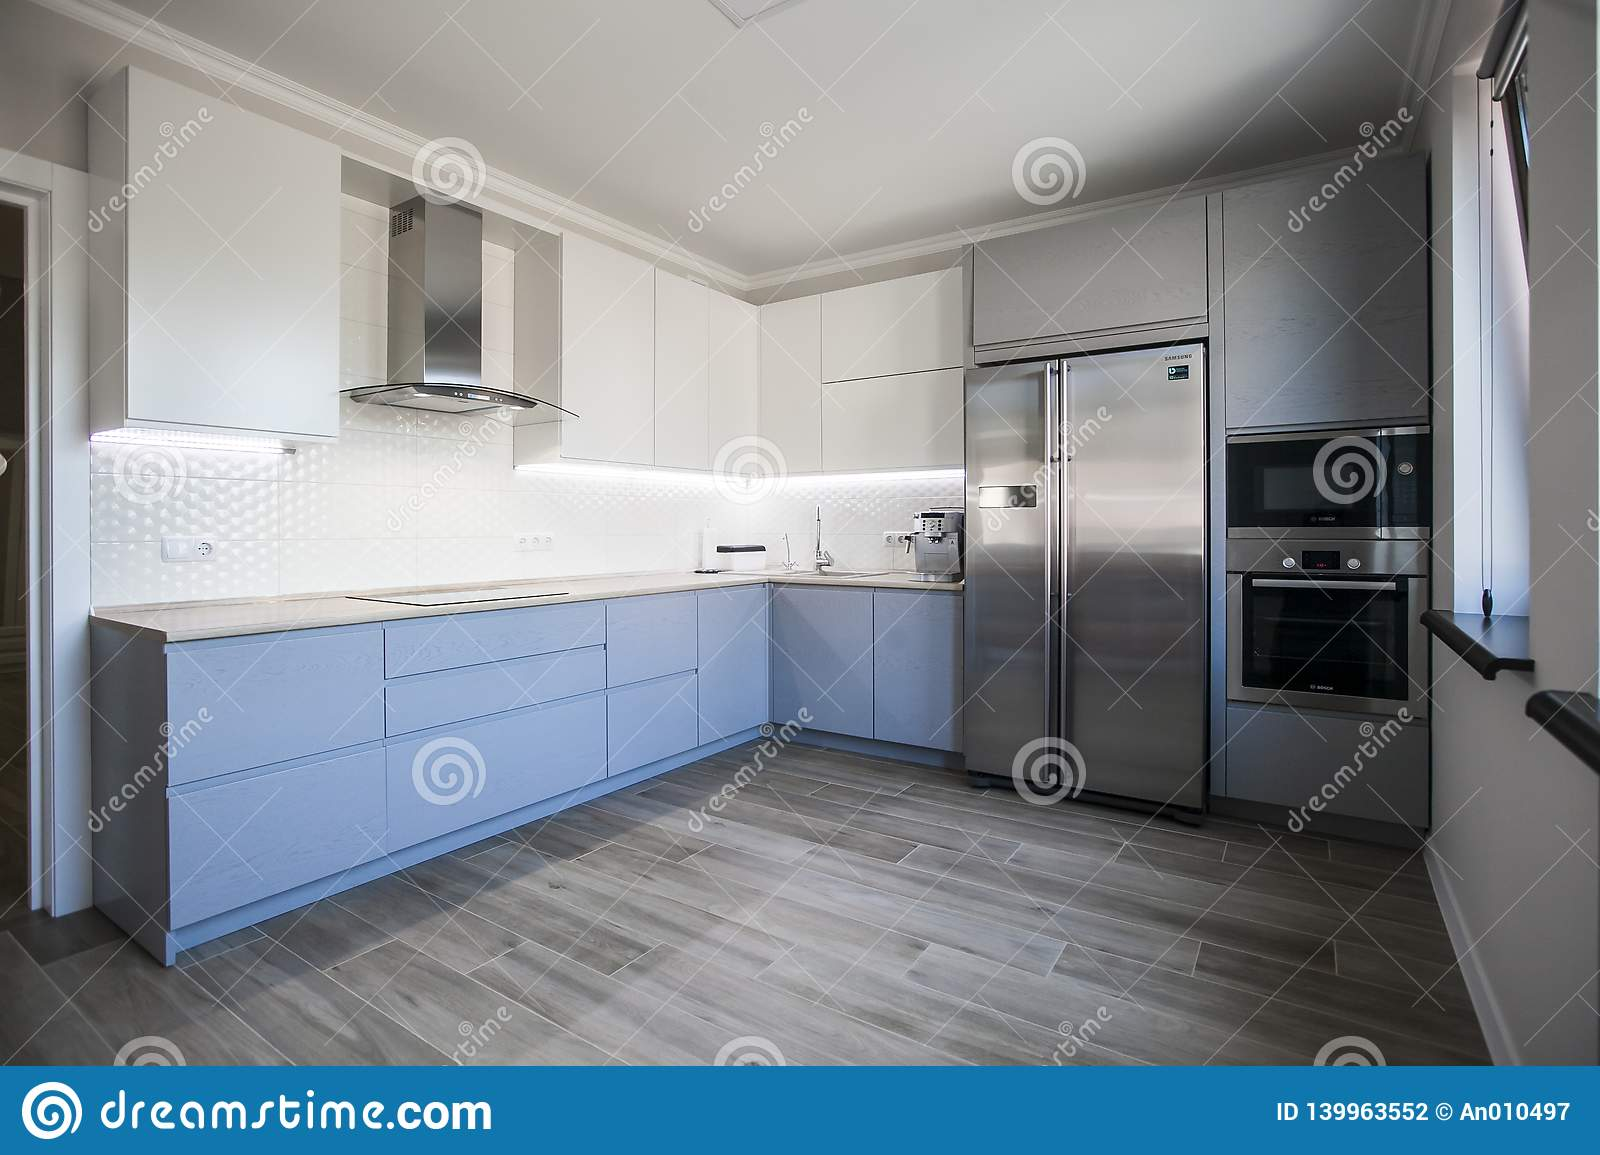 Blue and White Cabinets in Modern Kitchen Interior Stock Photo ...